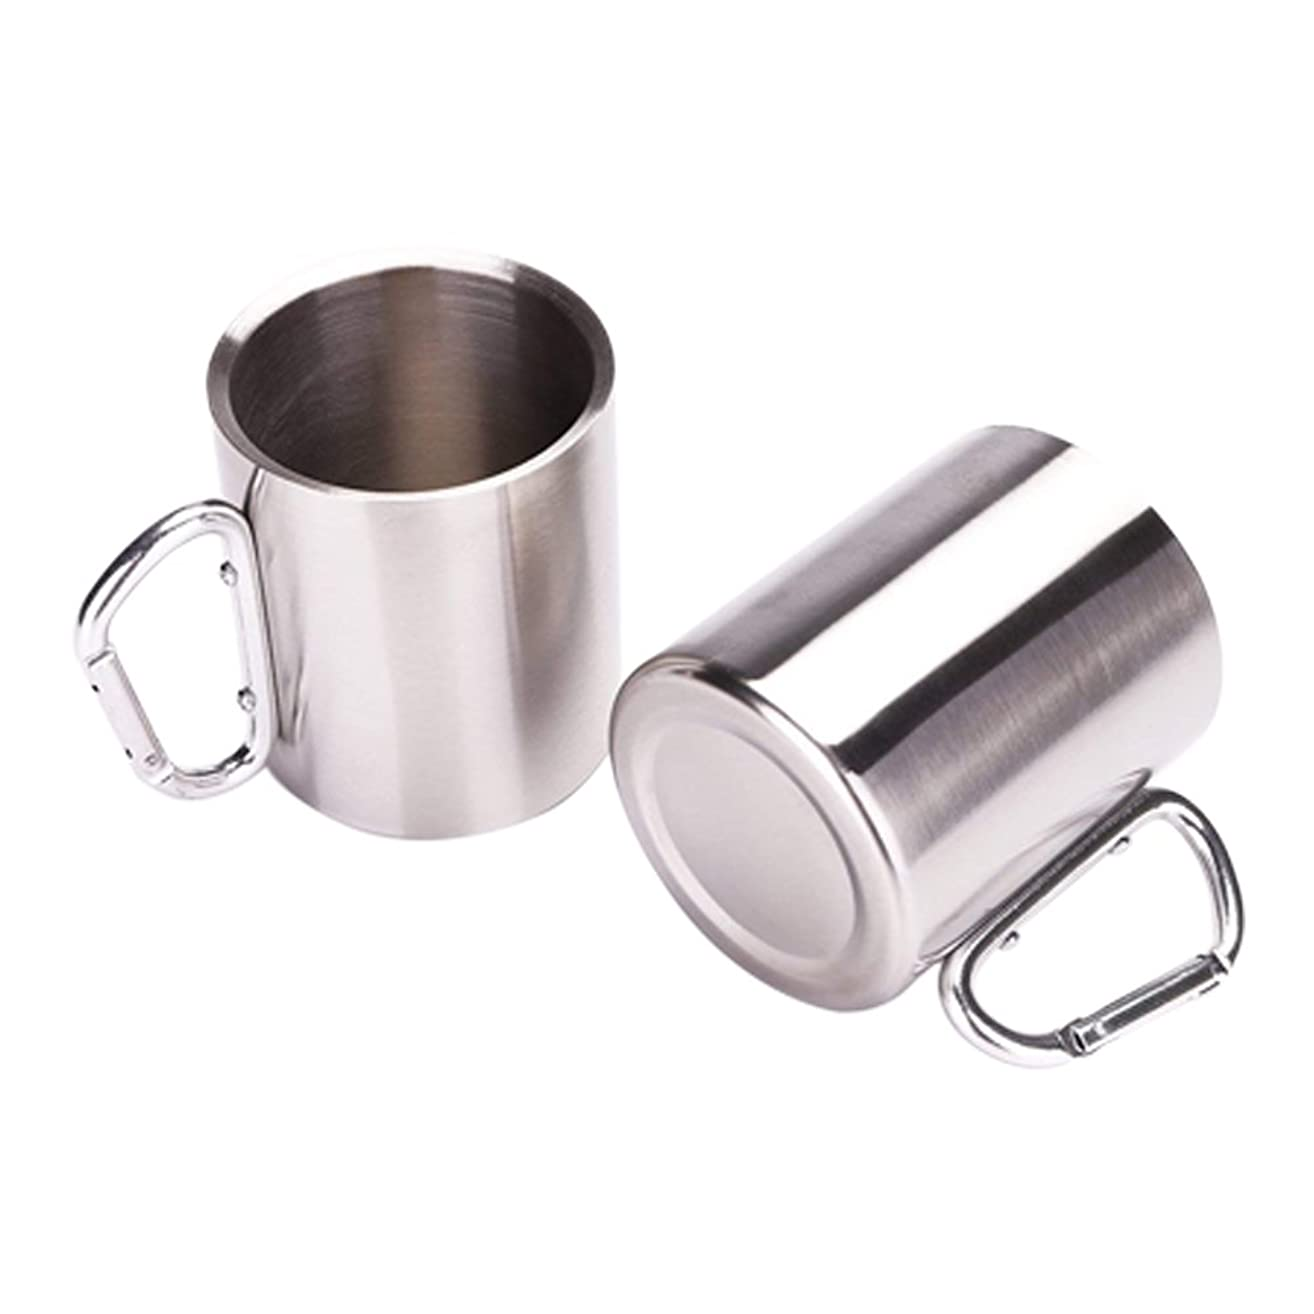 Tebery Stainless Steel Double Walled Mug with Carabiner Handle Insulation & Lightweight Large Thermal Cup For Backpacking, Camping & Hiking (2 Pack)